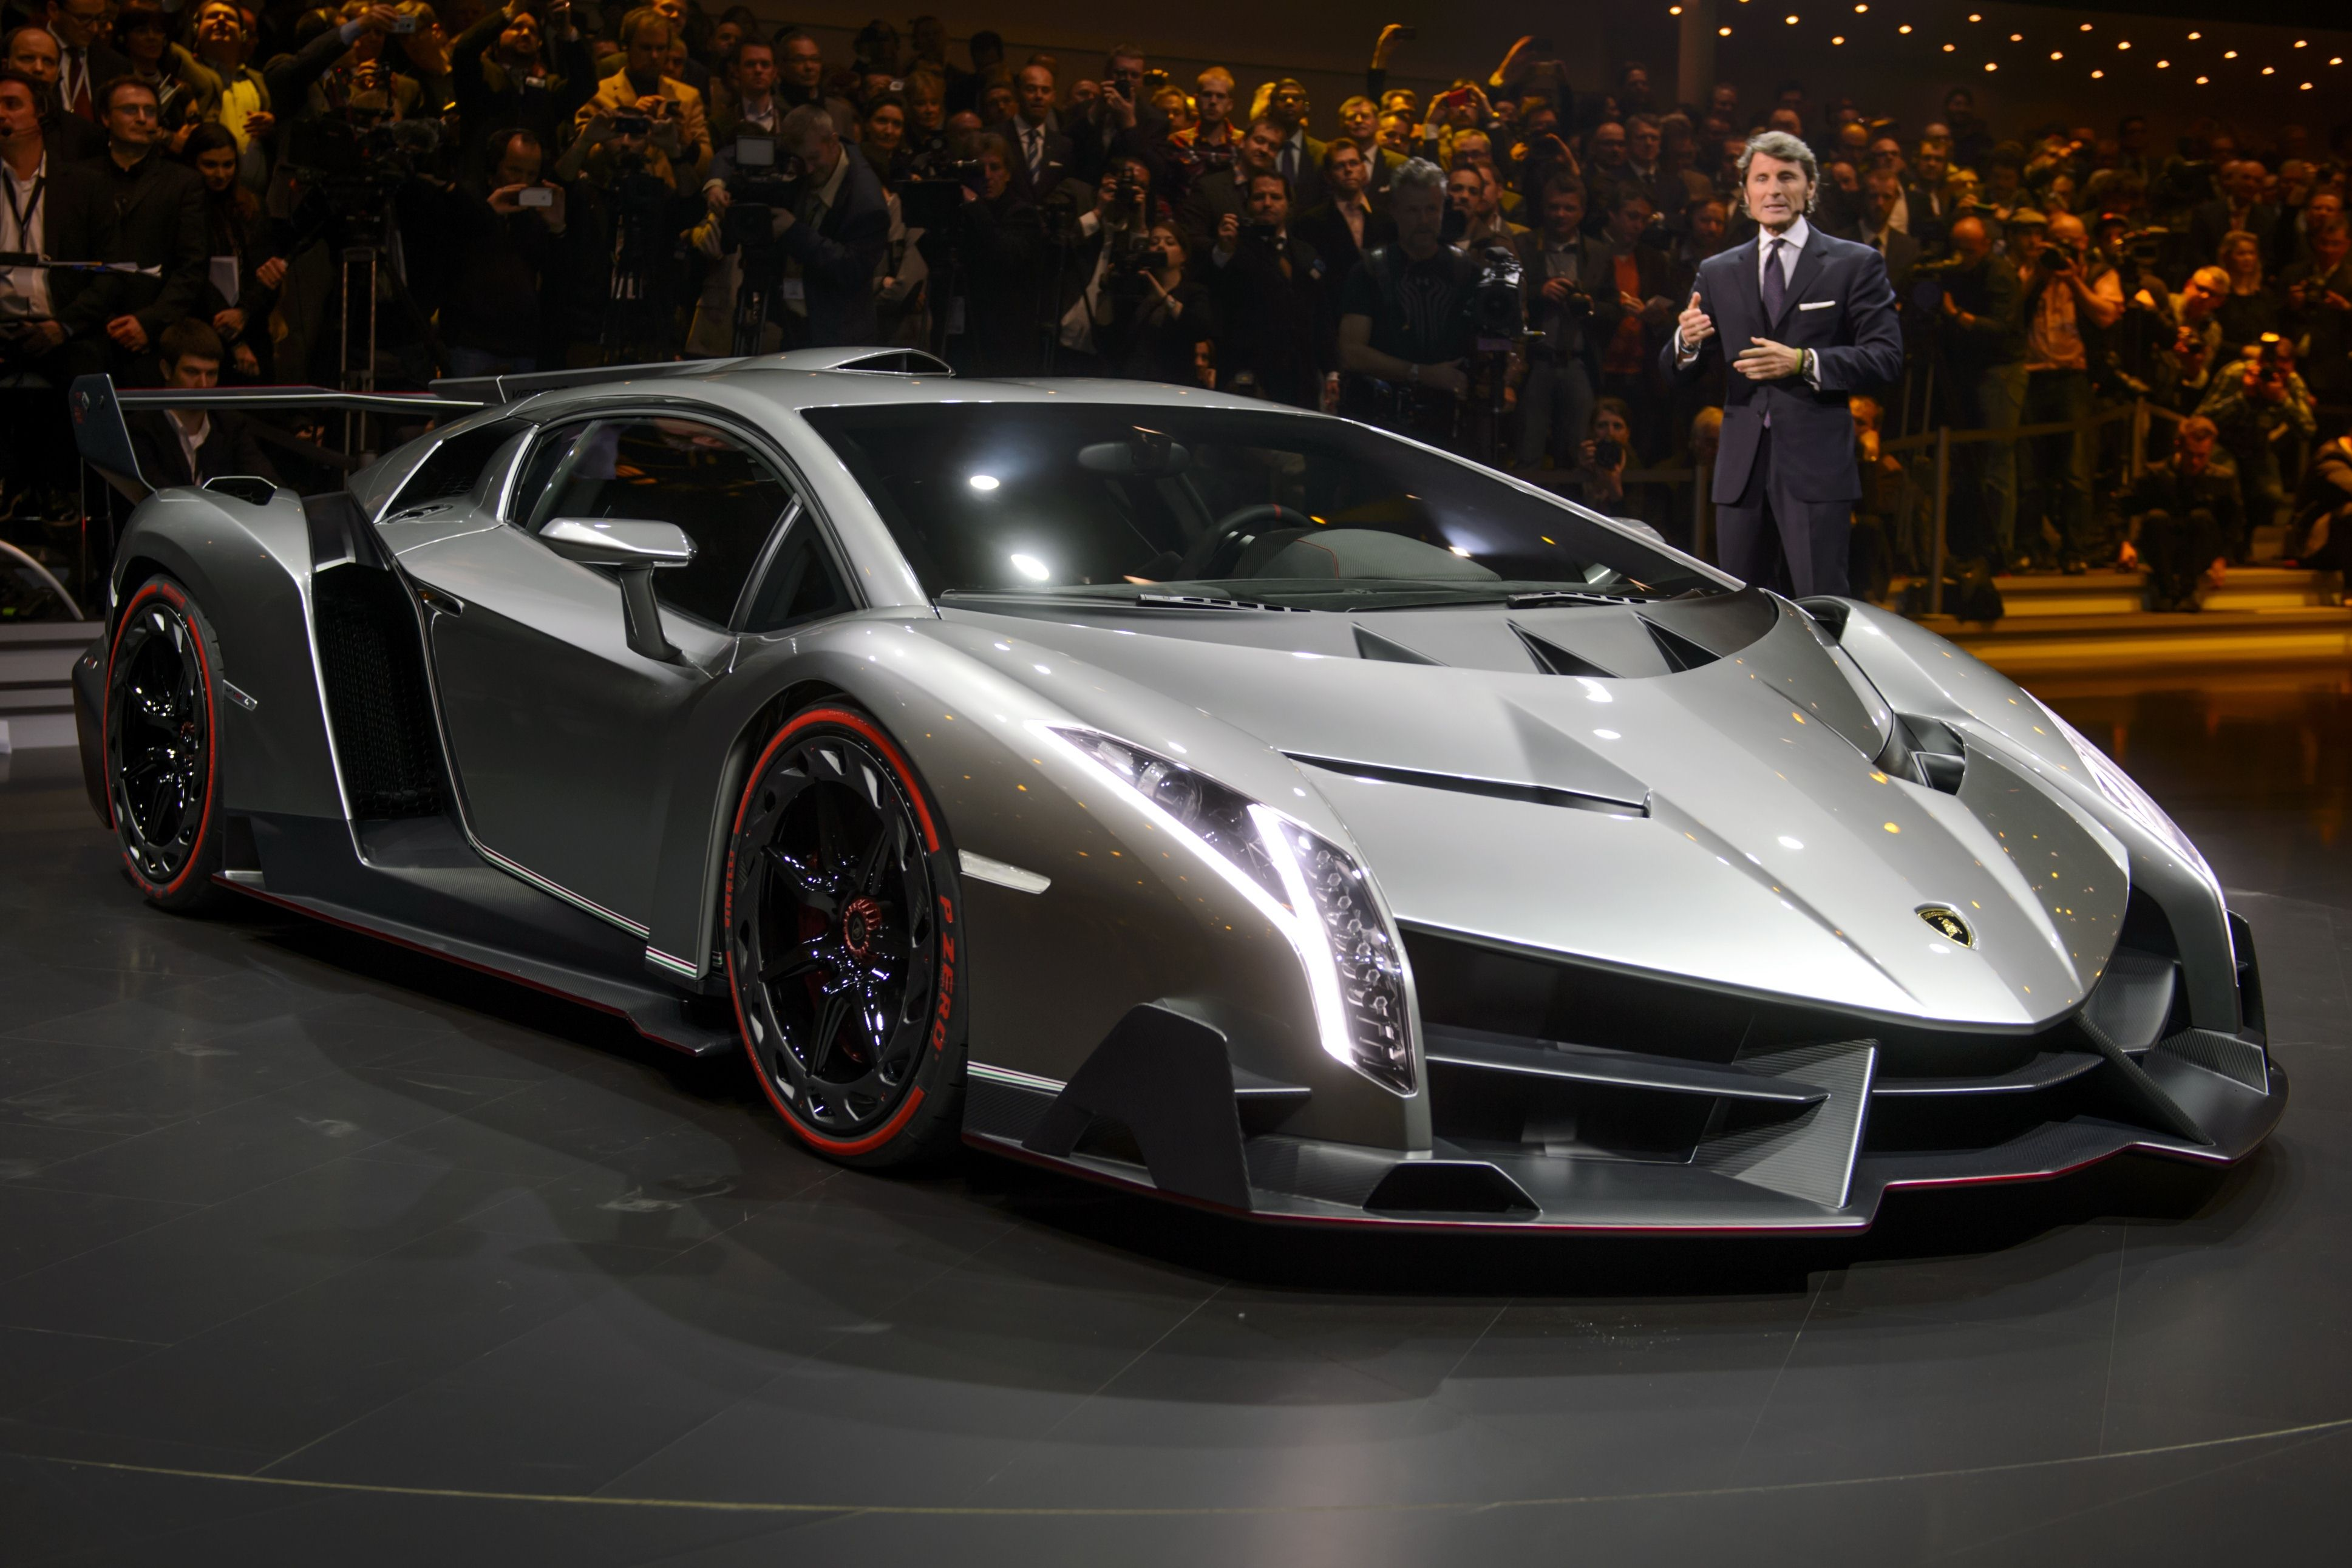 The new Lamborghini Veneno is presented by CEO and Chairman Stephan Winkelmann during a preview of Volkswagen Group on March 4, 2013 ahead of the Geneva Car Show in Geneva. AFP PHOTO / FABRICE COFFRINI